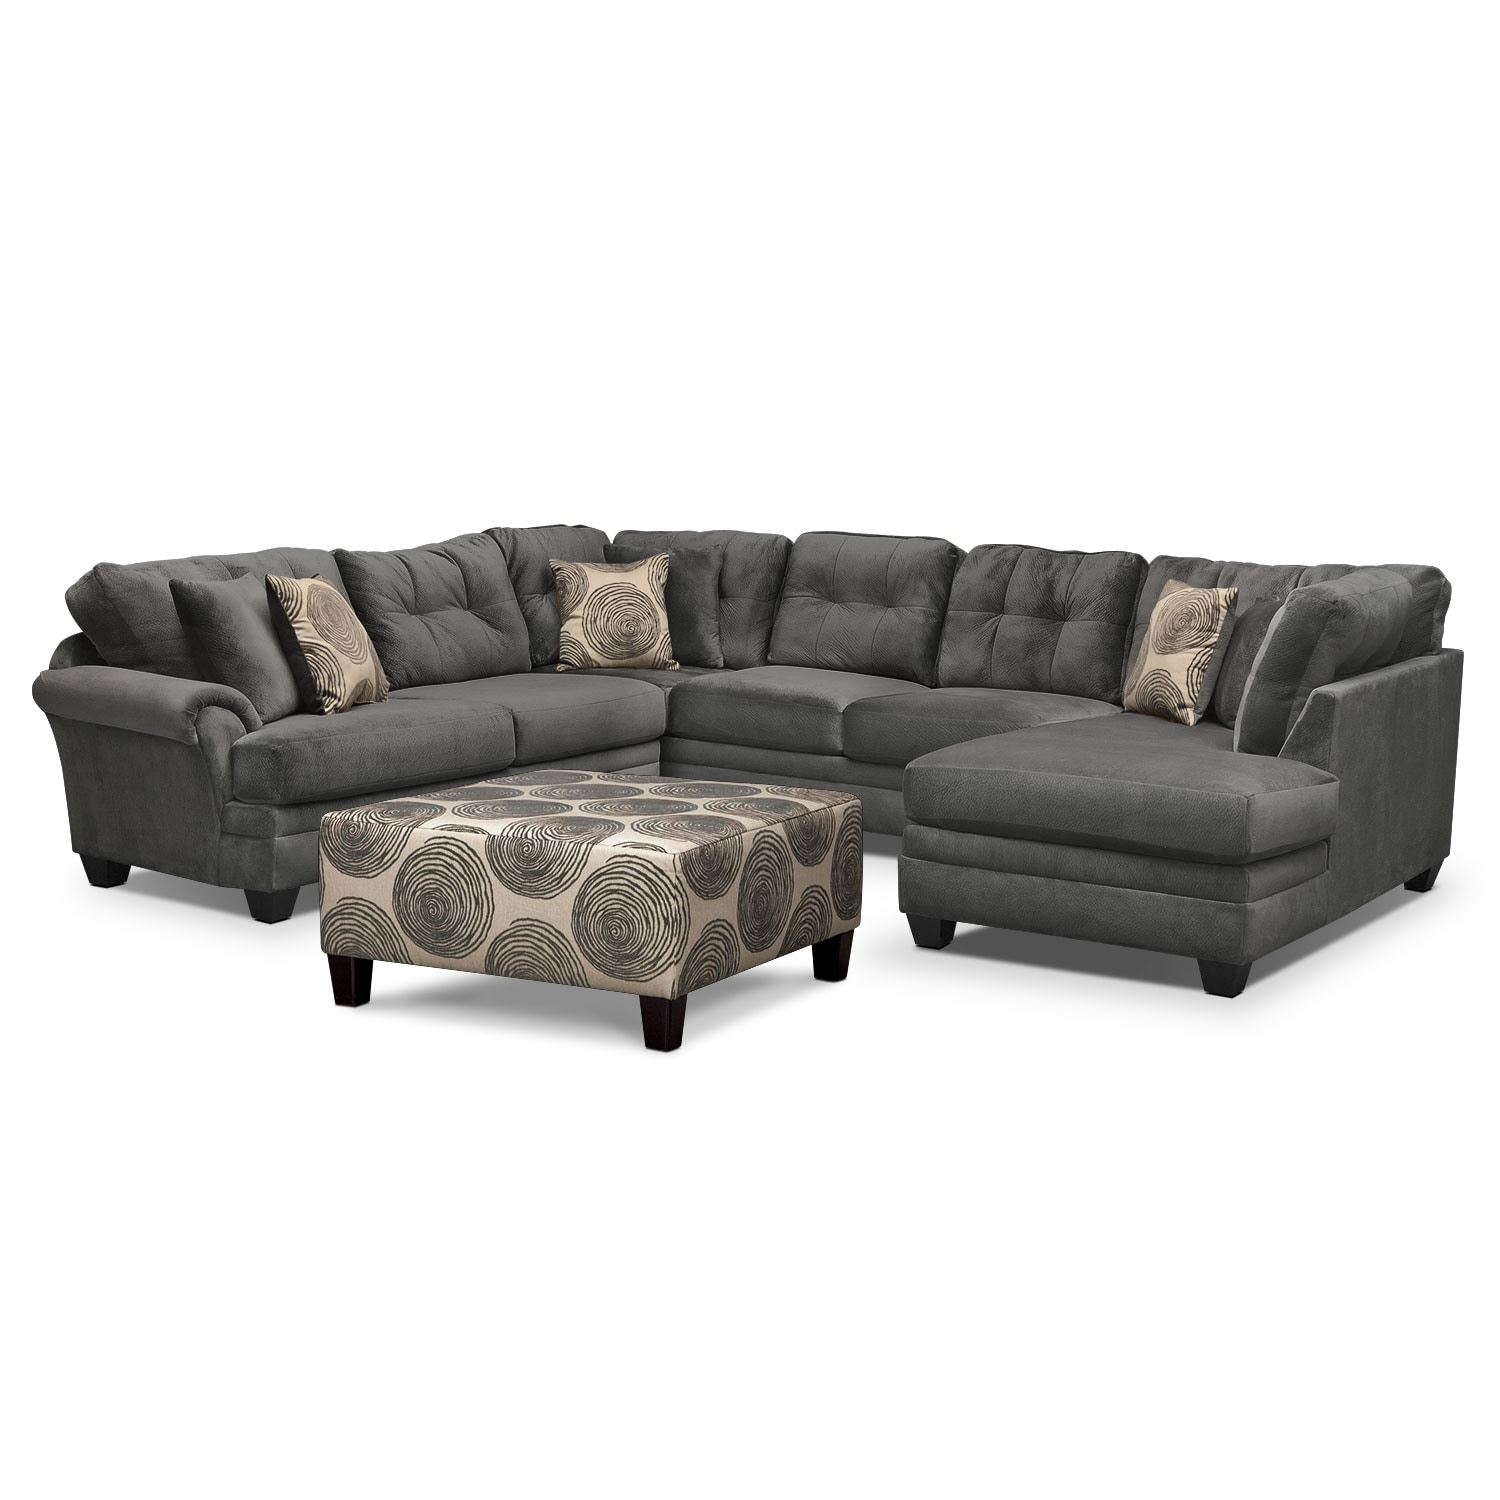 Cordelle 3 piece sectional and cocktail ottoman set gray for 7 ft sectional sofa